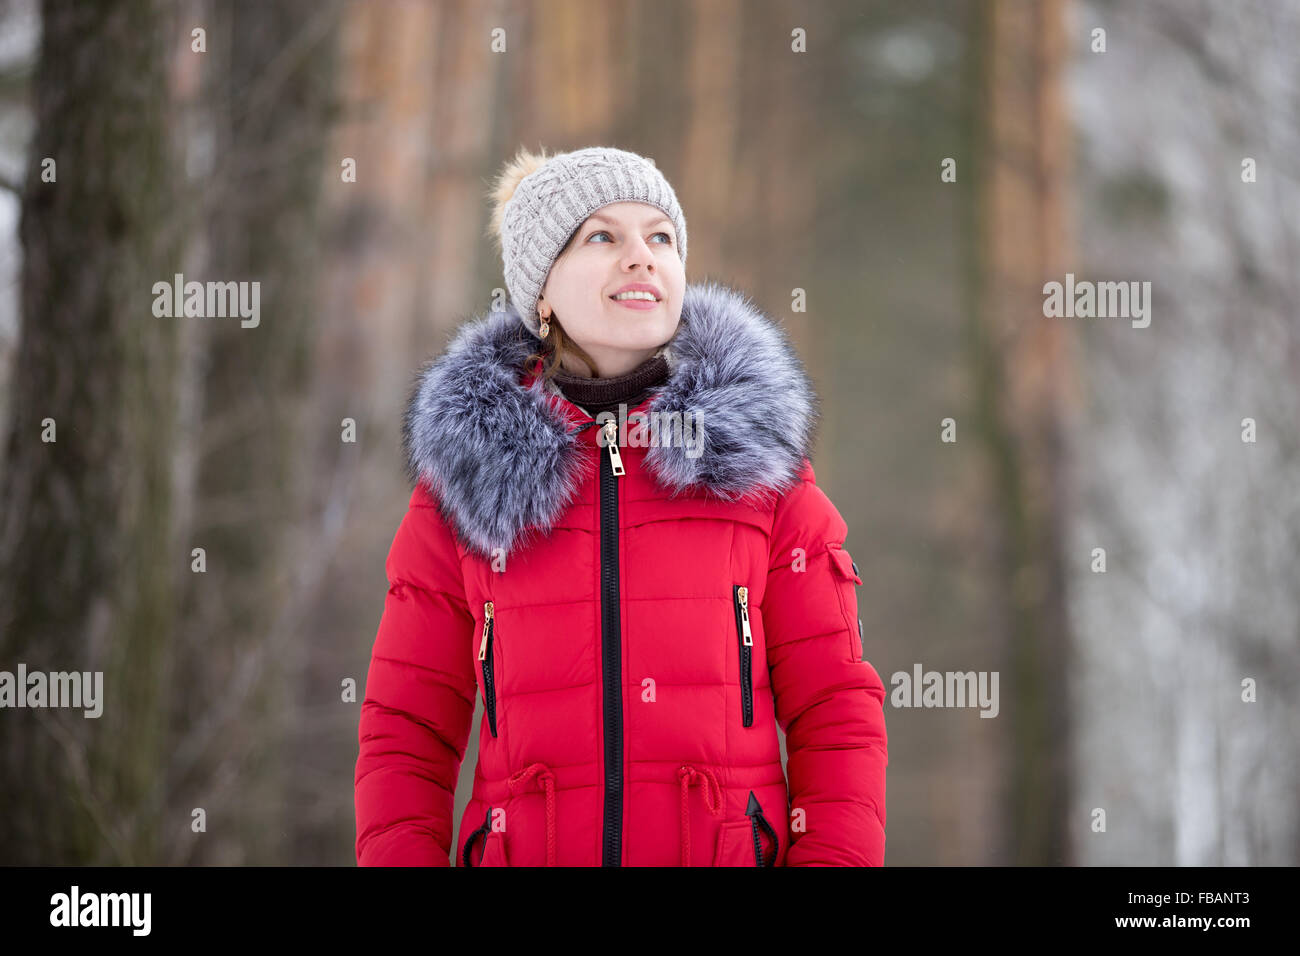 Beautiful girl in knitted hat and red winter coat with fur collar smiling dreamily outdoors - Stock Image